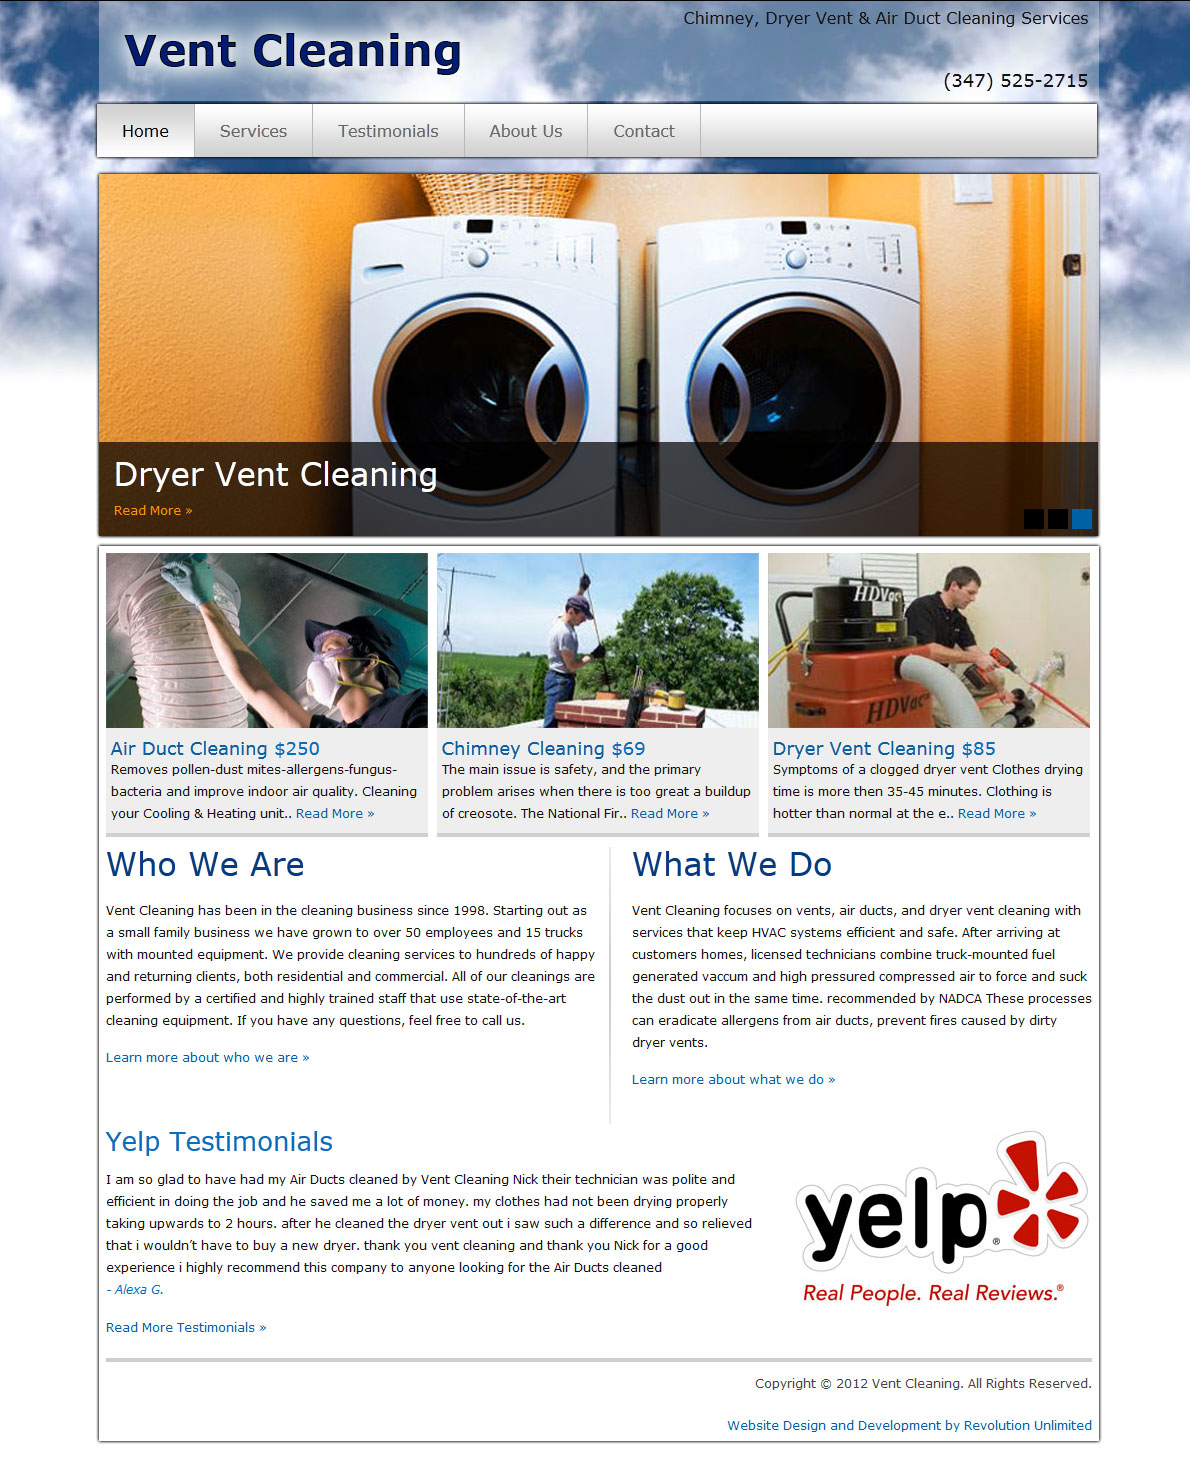 Vent Cleaning Website